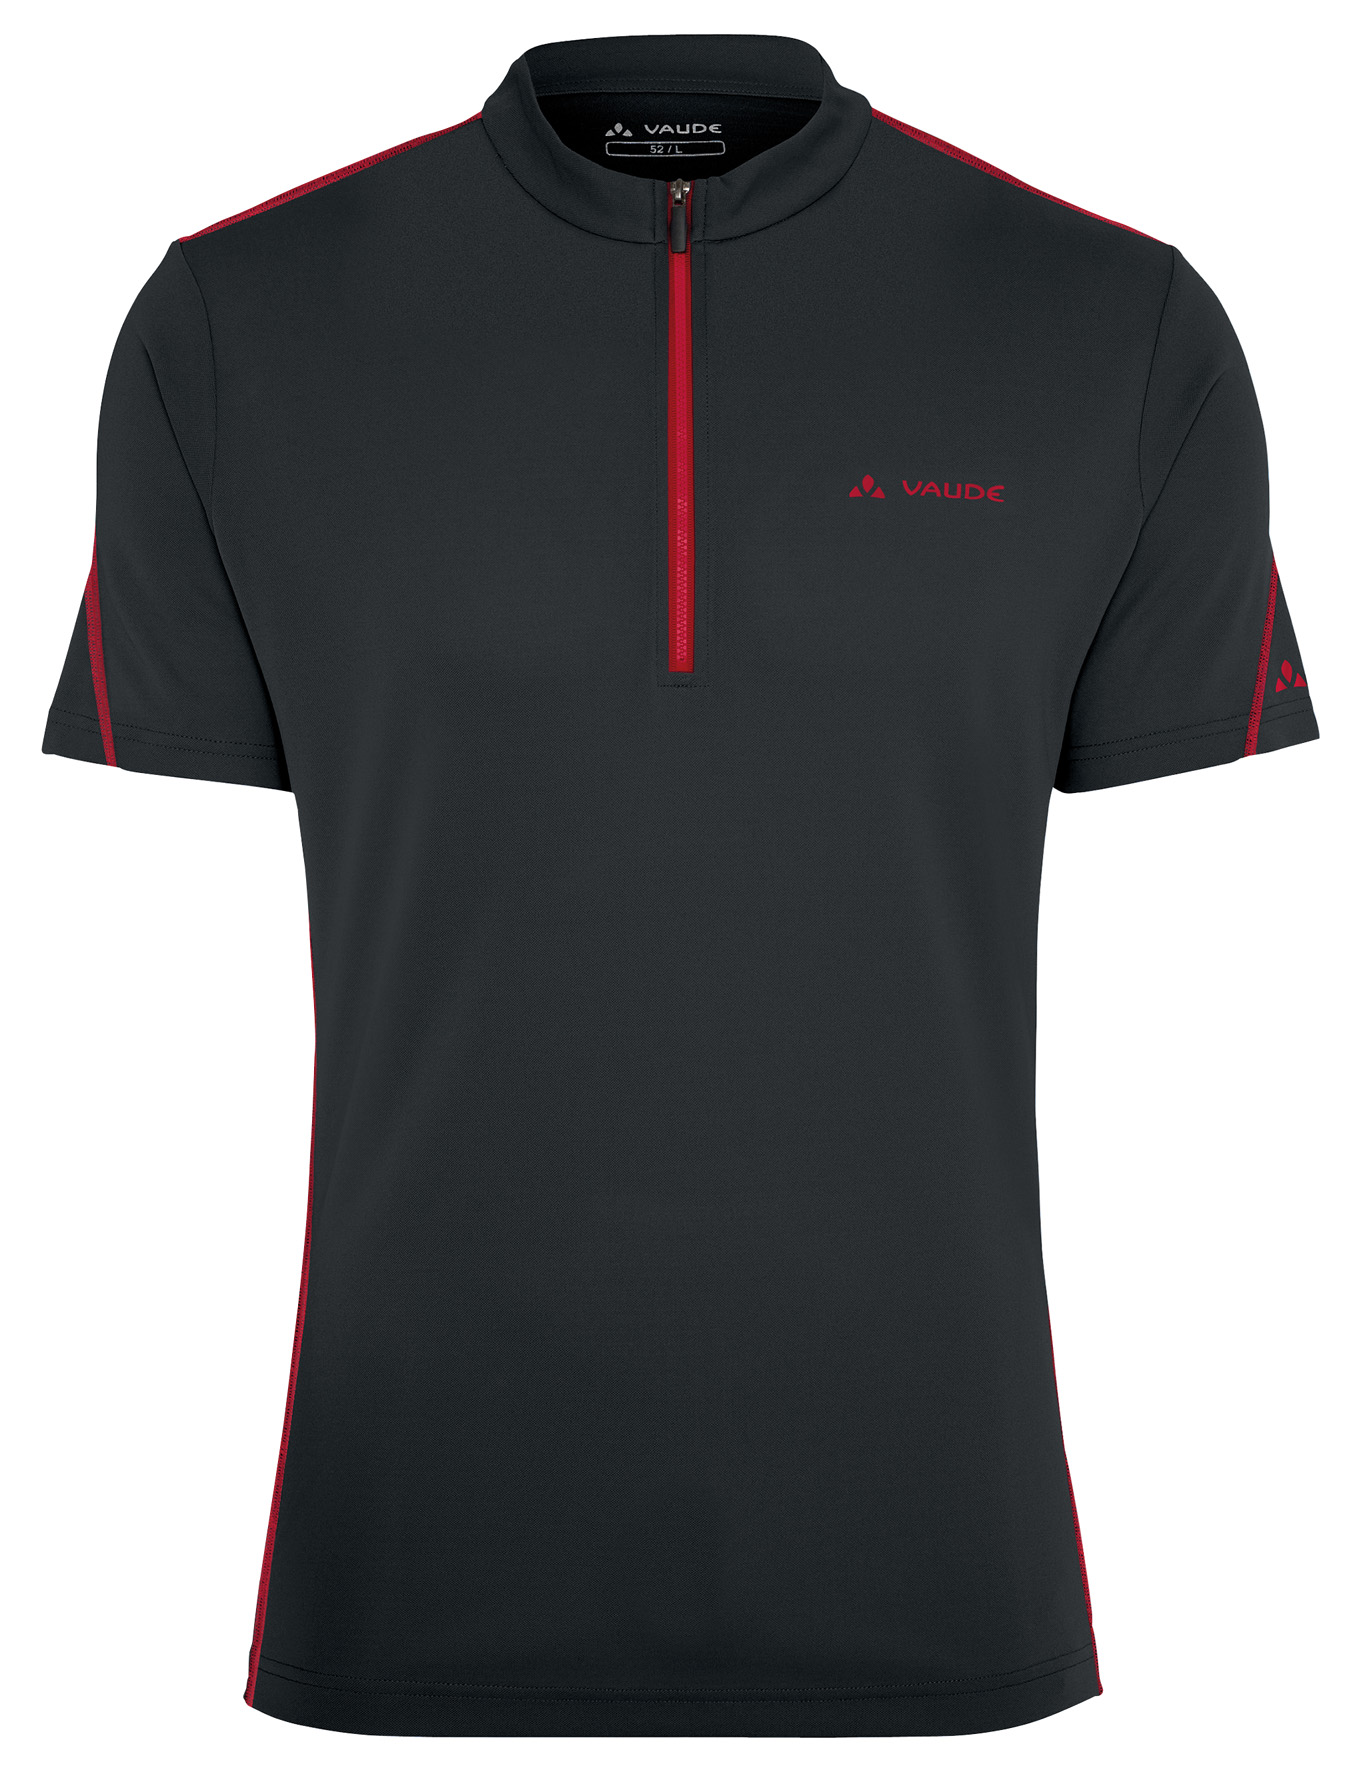 VAUDE Men´s Tamaro Shirt black/red Größe S - schneider-sports